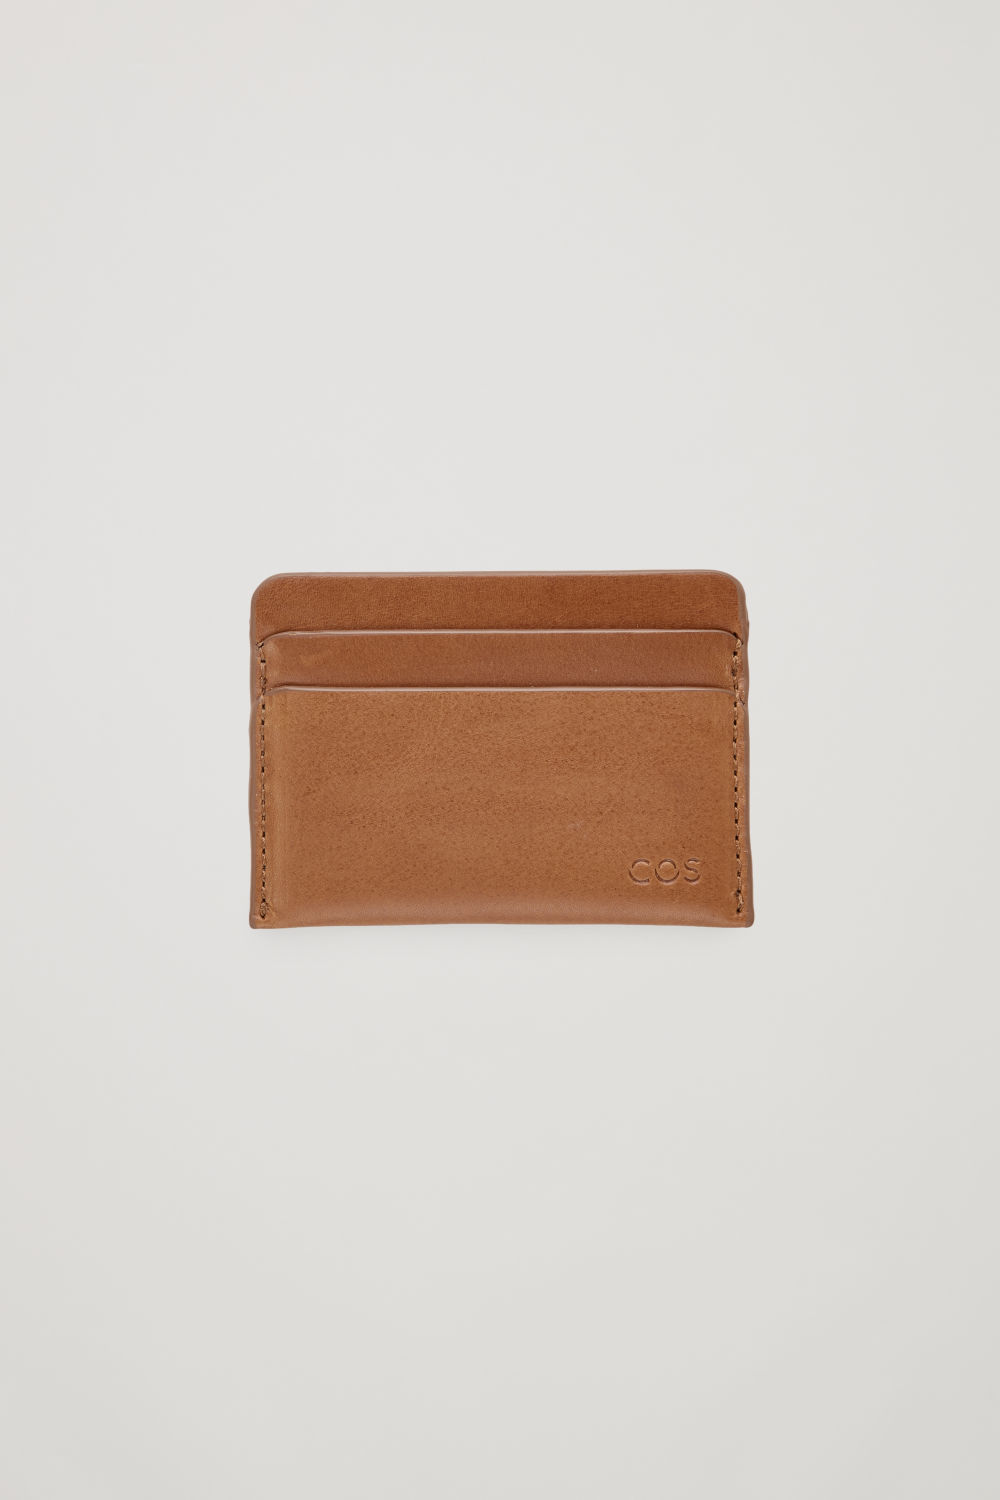 코스 COS ROUND-EDGED LEATHER CARDHOLDER,Beige